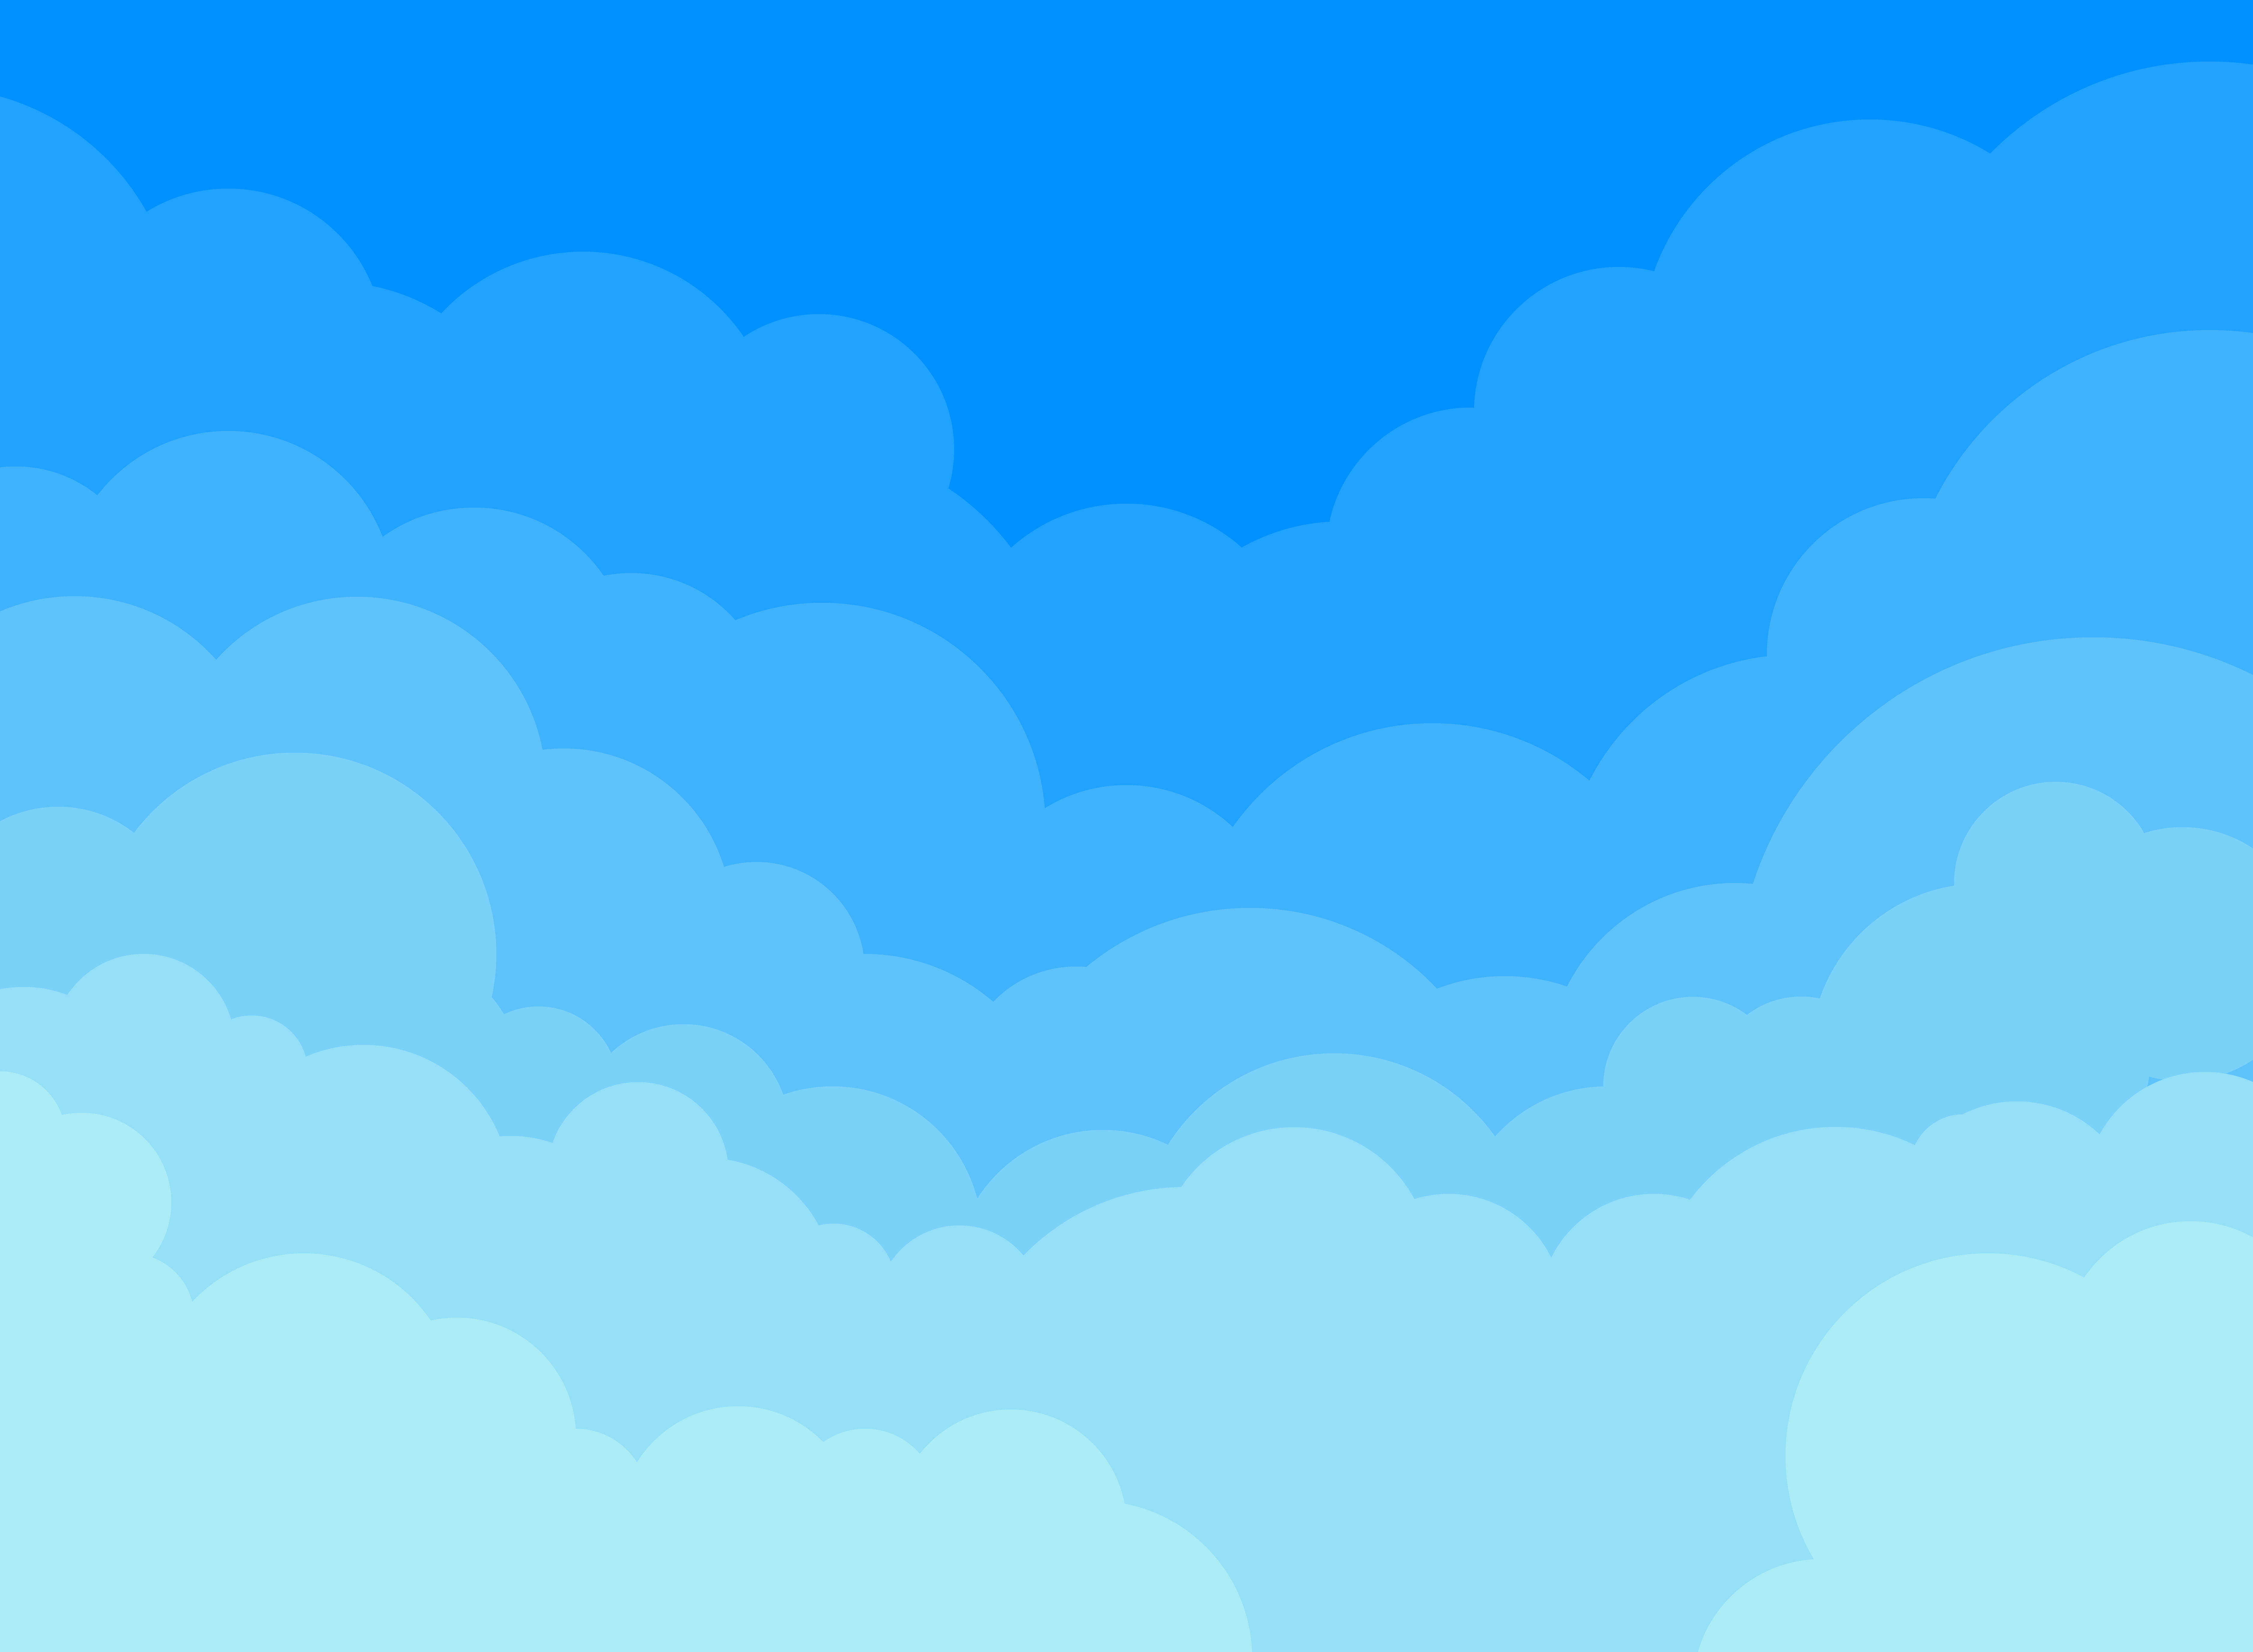 paper clouds and blue sky background